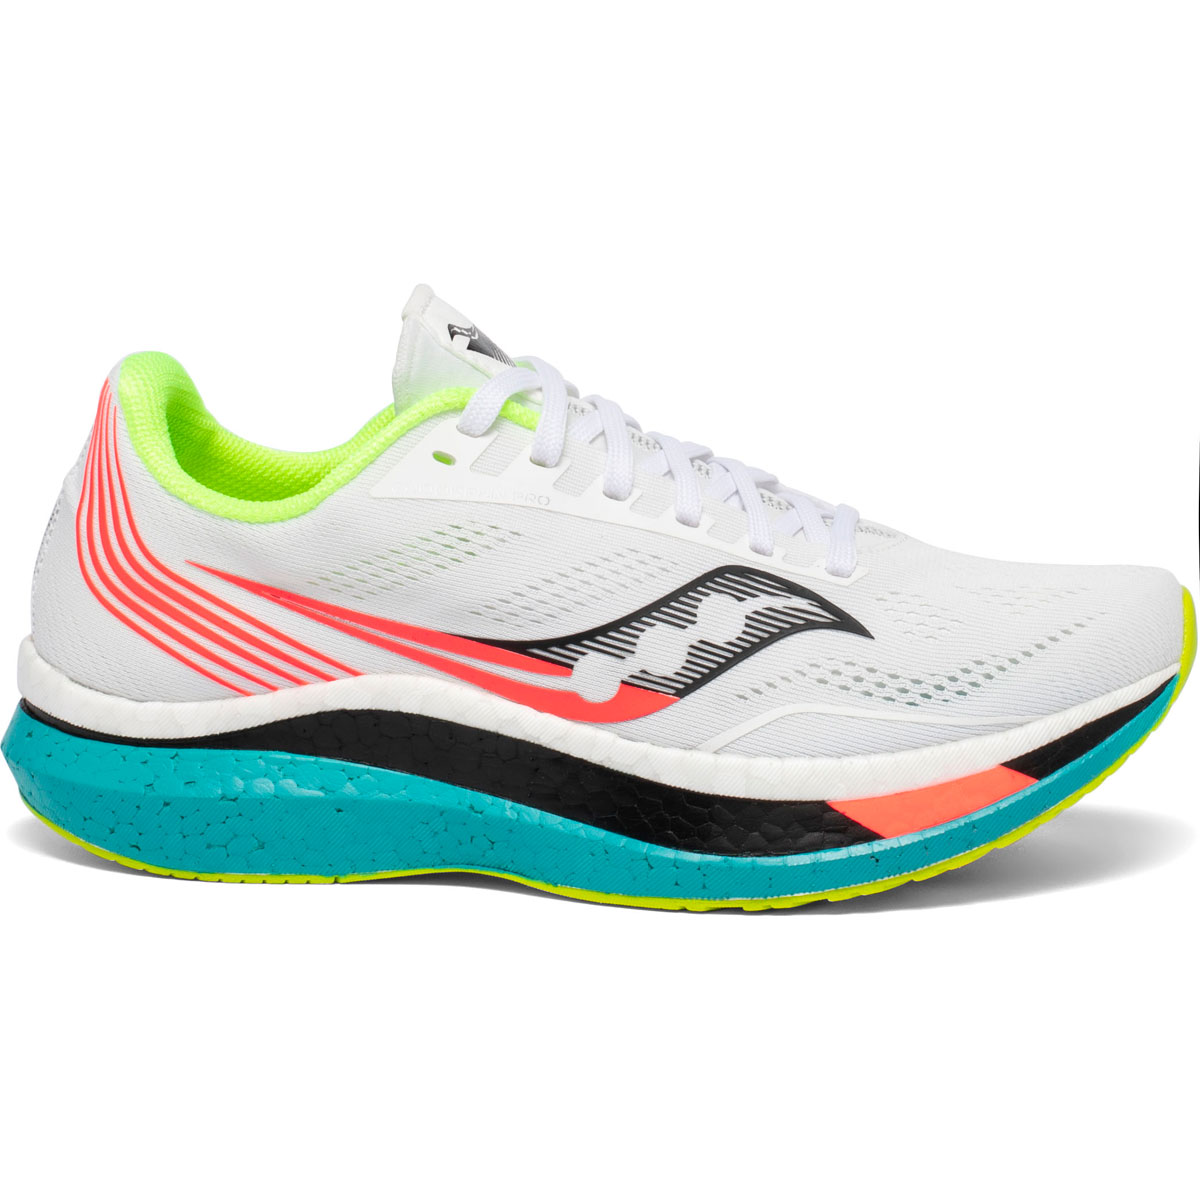 Women's Saucony Endorphin Pro Running Shoe - Color: White Mutant (Regular Width) - Size: 5, White Mutant, large, image 1